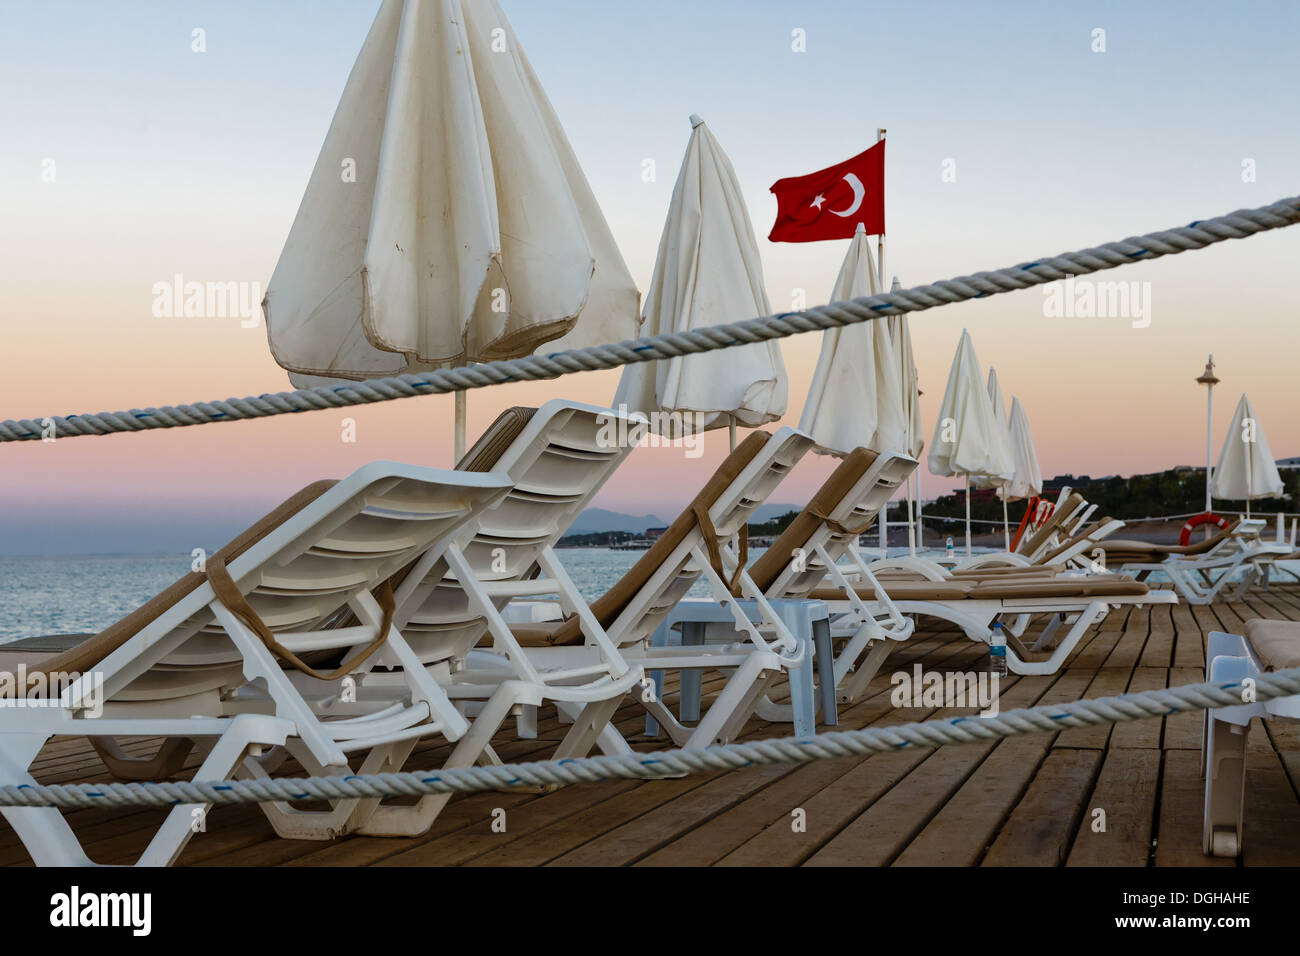 Chaise lounges and sun-protection umbrellas on a wooden pier in Turkish resort on a beach of Mediterranean Sea - Stock Image